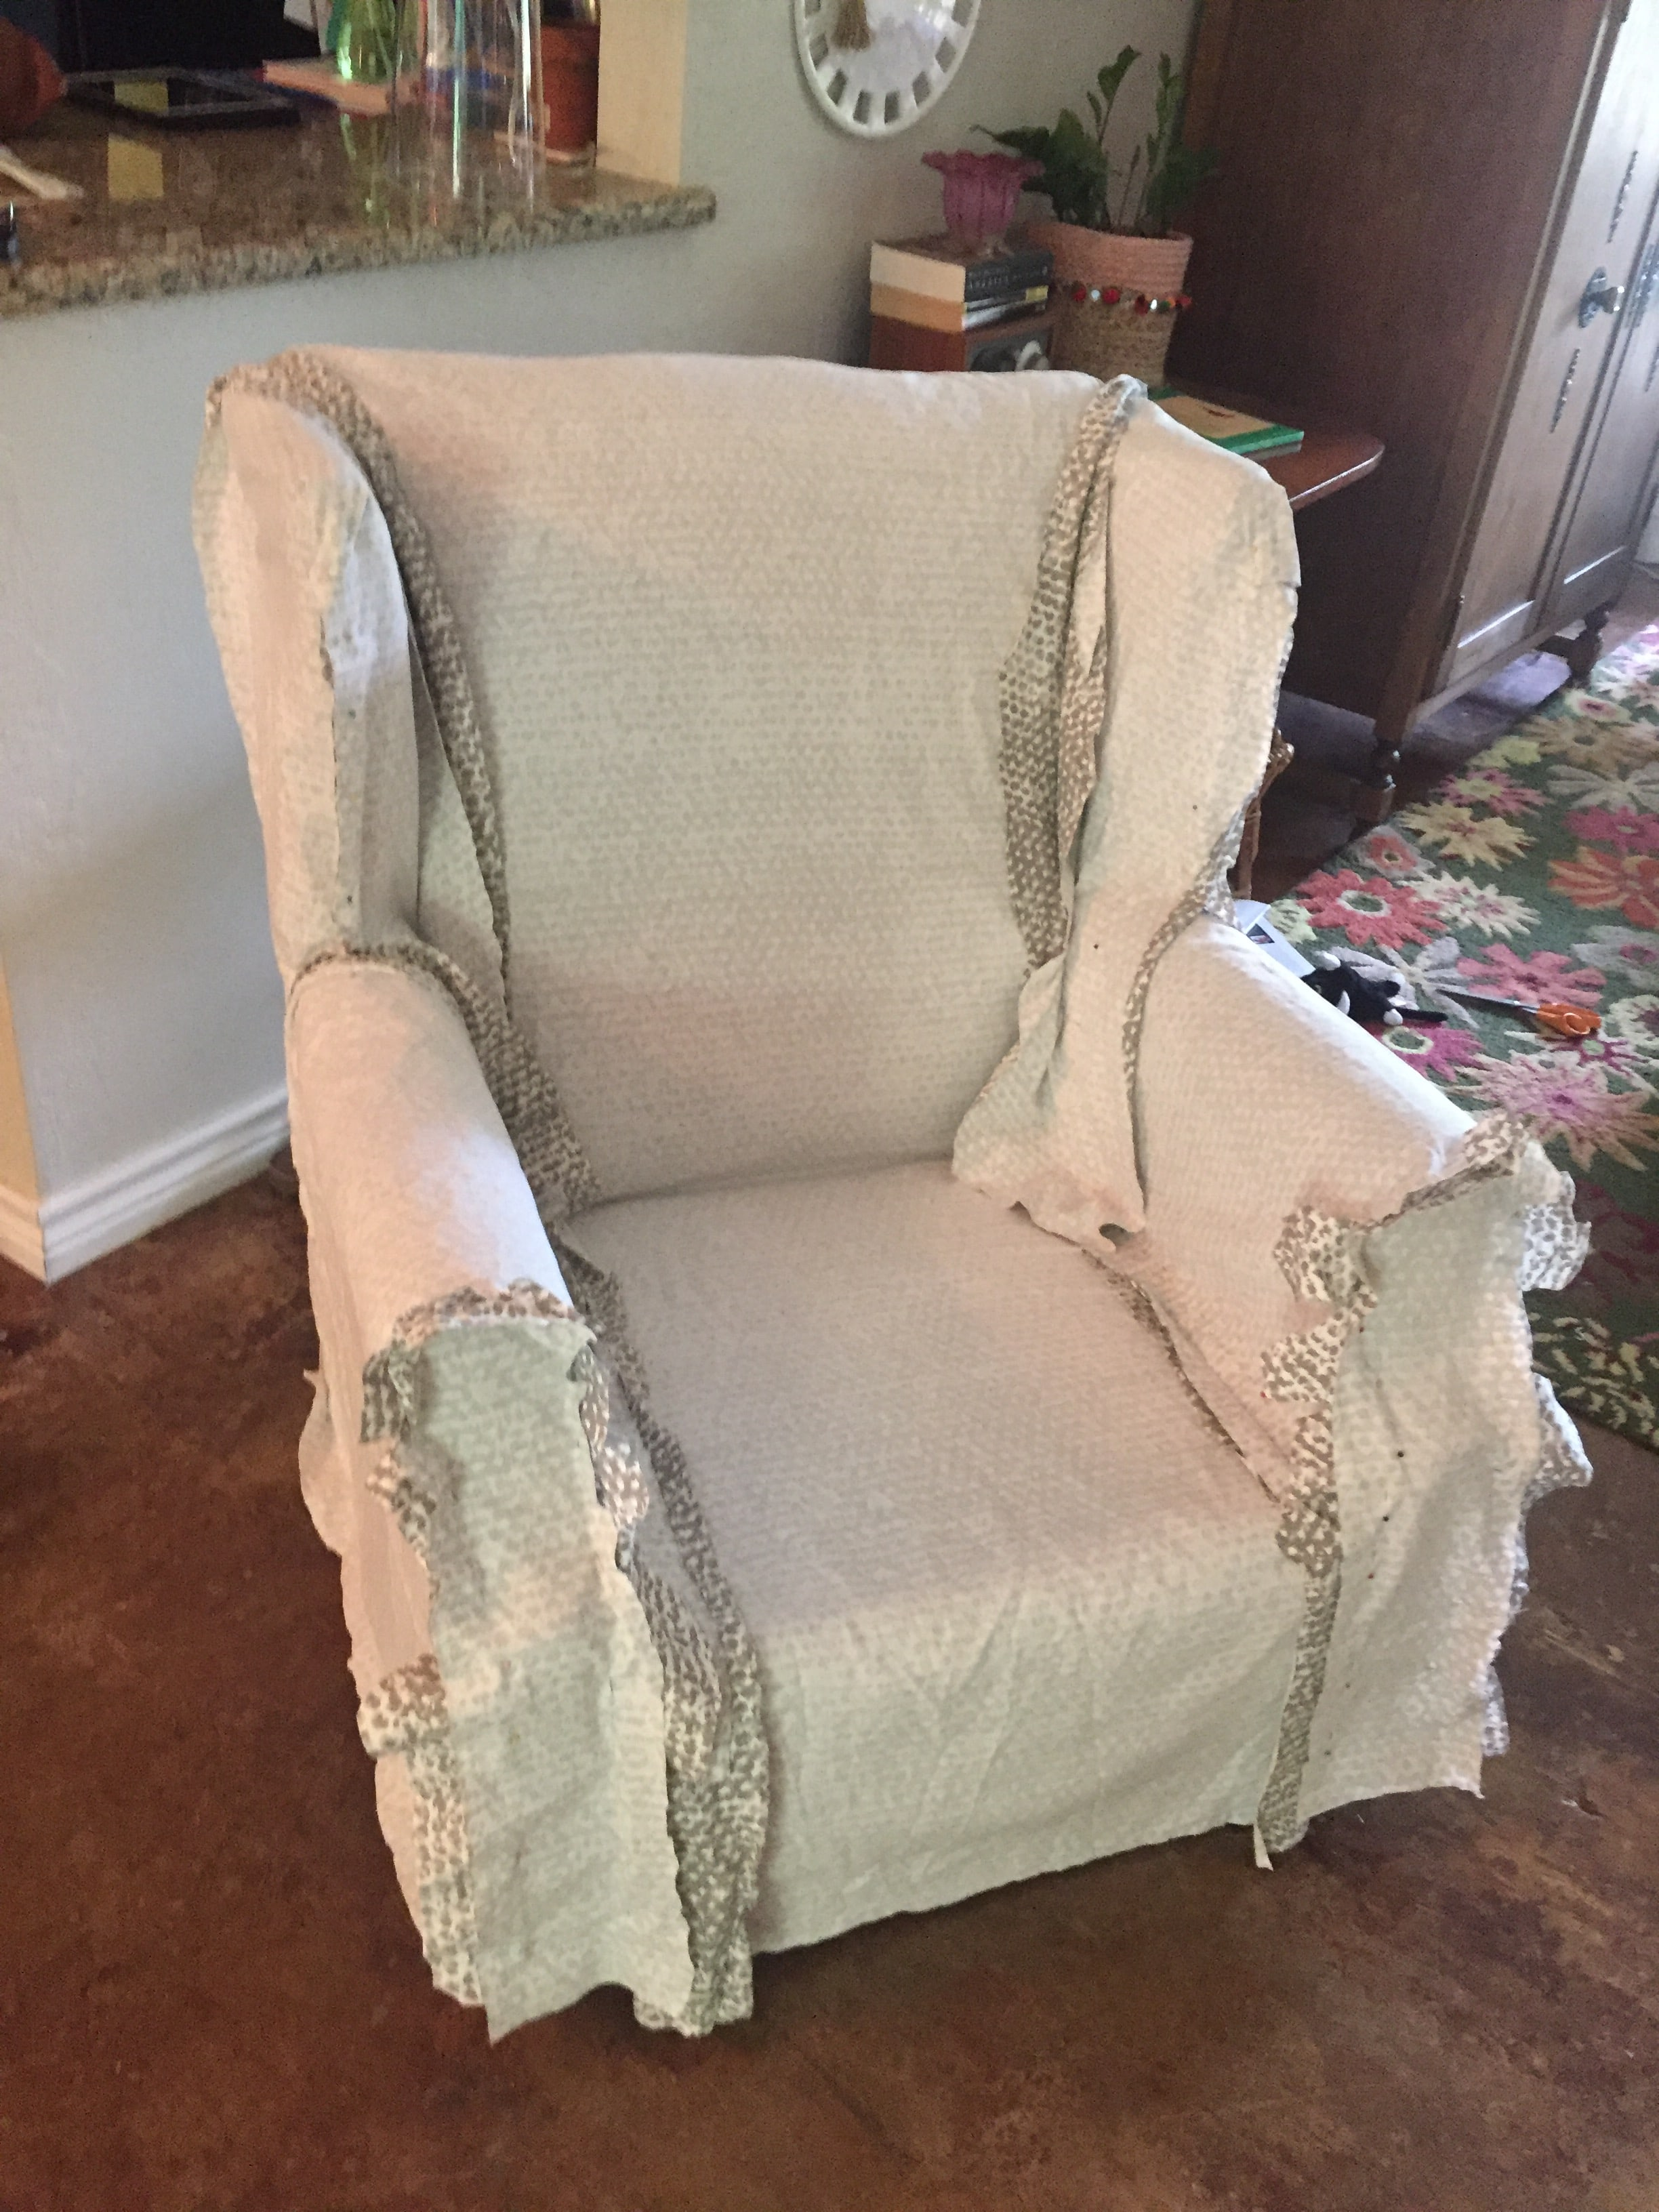 Slip Cover For Chair Wingback Chair Slipcover Tutorial Create Your Own Diy Slipcover